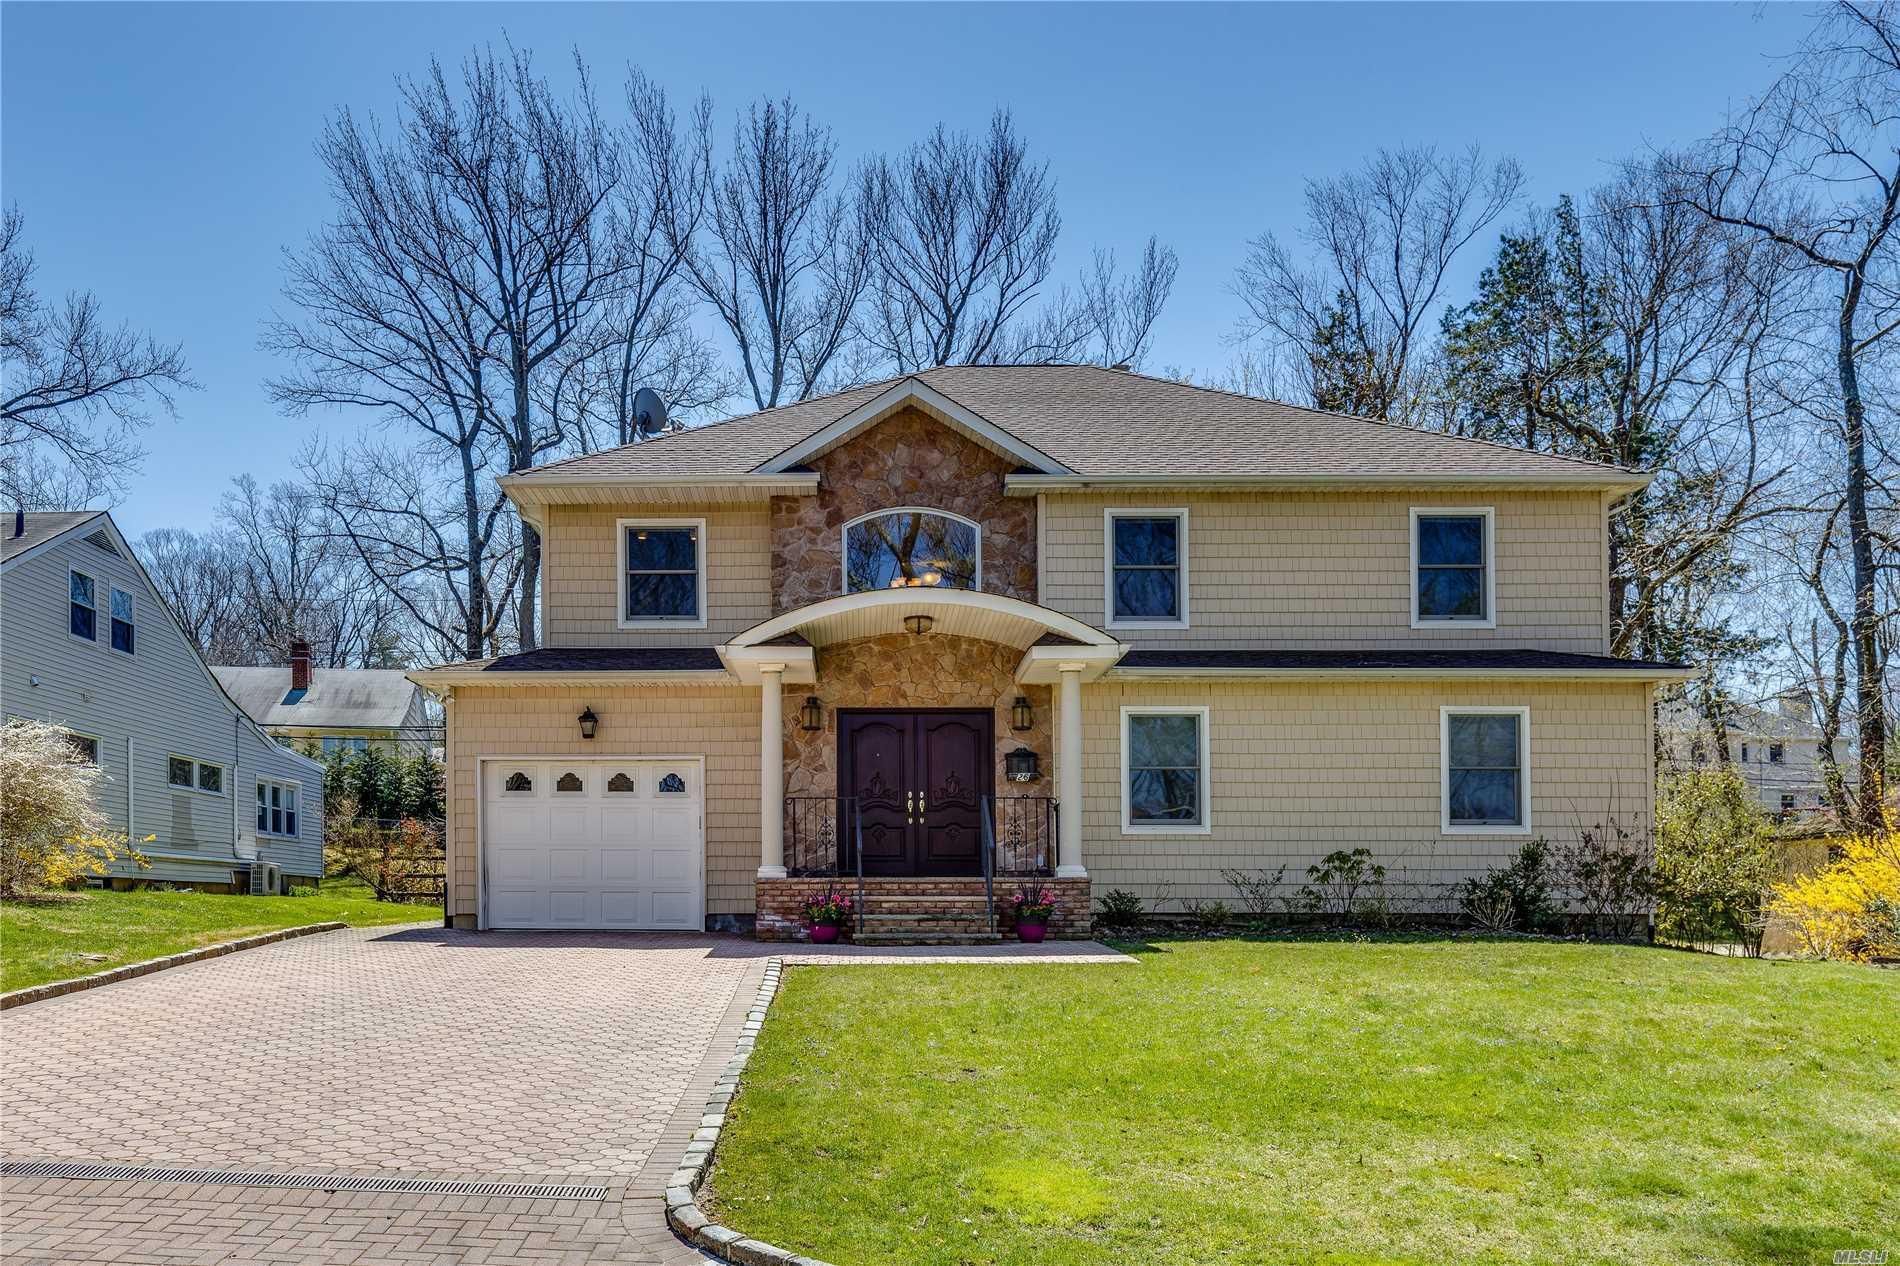 Like No Other! Bringing The Outside In, Every Room Of This Beautifully Renovated Home Has It's Own Window! Ready To Move In! Magnificent 2 Story Entry Leads To An Open Floor Plan, Boasting Refined Good Taste And Gracious Living. 2 Master Br Suites, Large Den, Main Floor Study, Walls Of Windows, Overlook Private Grounds. 5 Minutes To Lirr, Park & Town,  Gn Park District Pool, Etc.